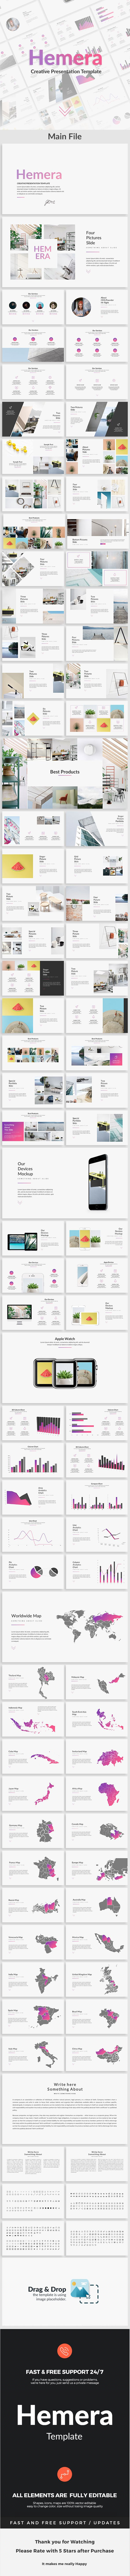 #Hemera - Creative #Powerpoint Template - #Creative PowerPoint #Templates Download here: https://graphicriver.net/item/hemera-creative-powerpoint-template/19127452?ref=alena994